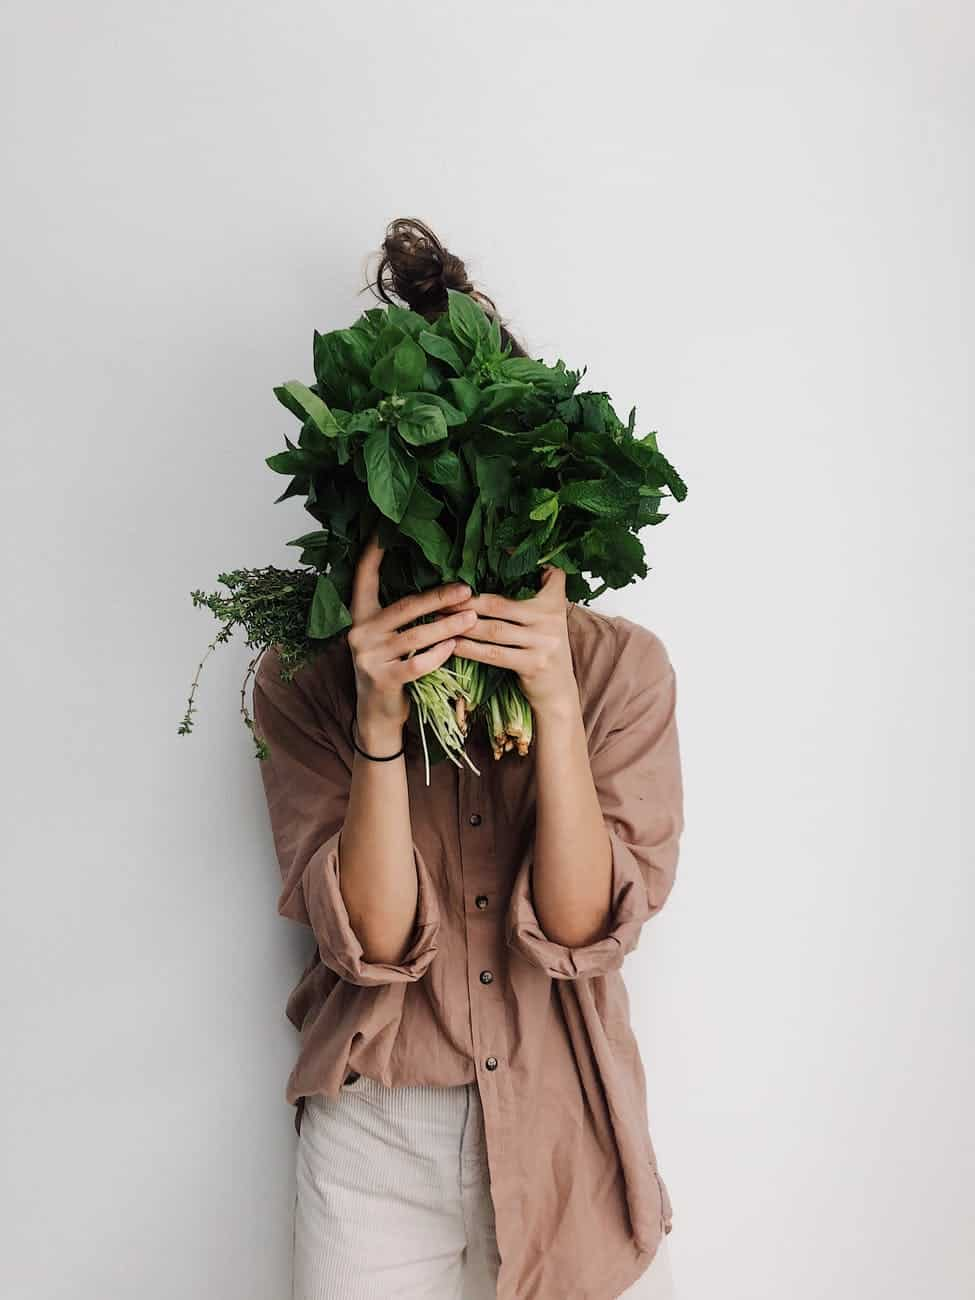 person holding green vegetables representing handing from real change